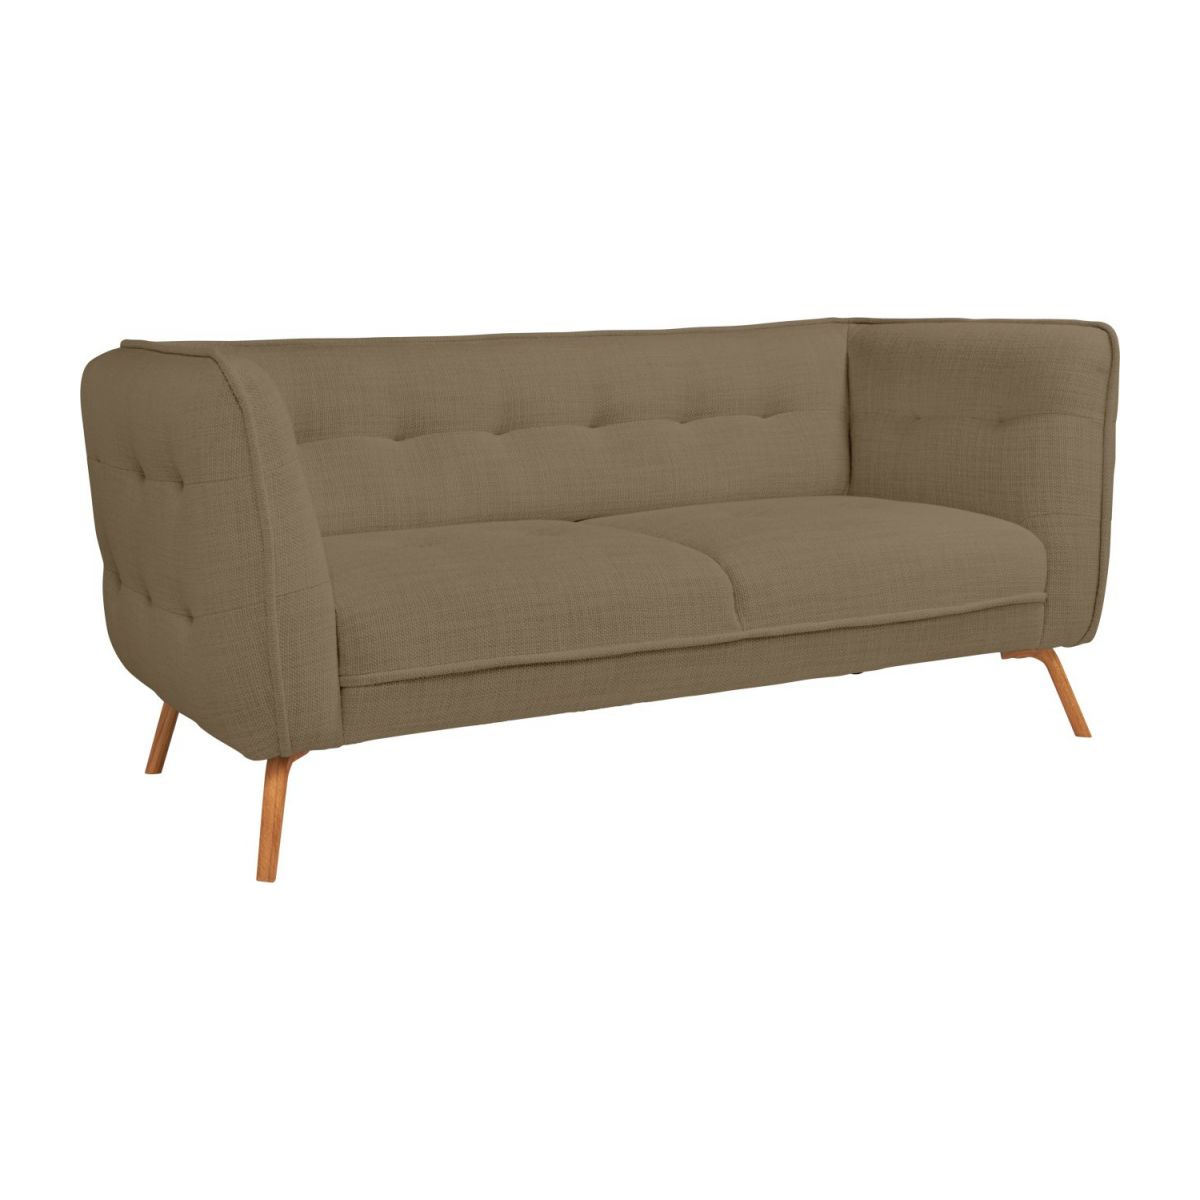 2 seater sofa in Fasoli fabric, jatoba brown and oak legs n°1